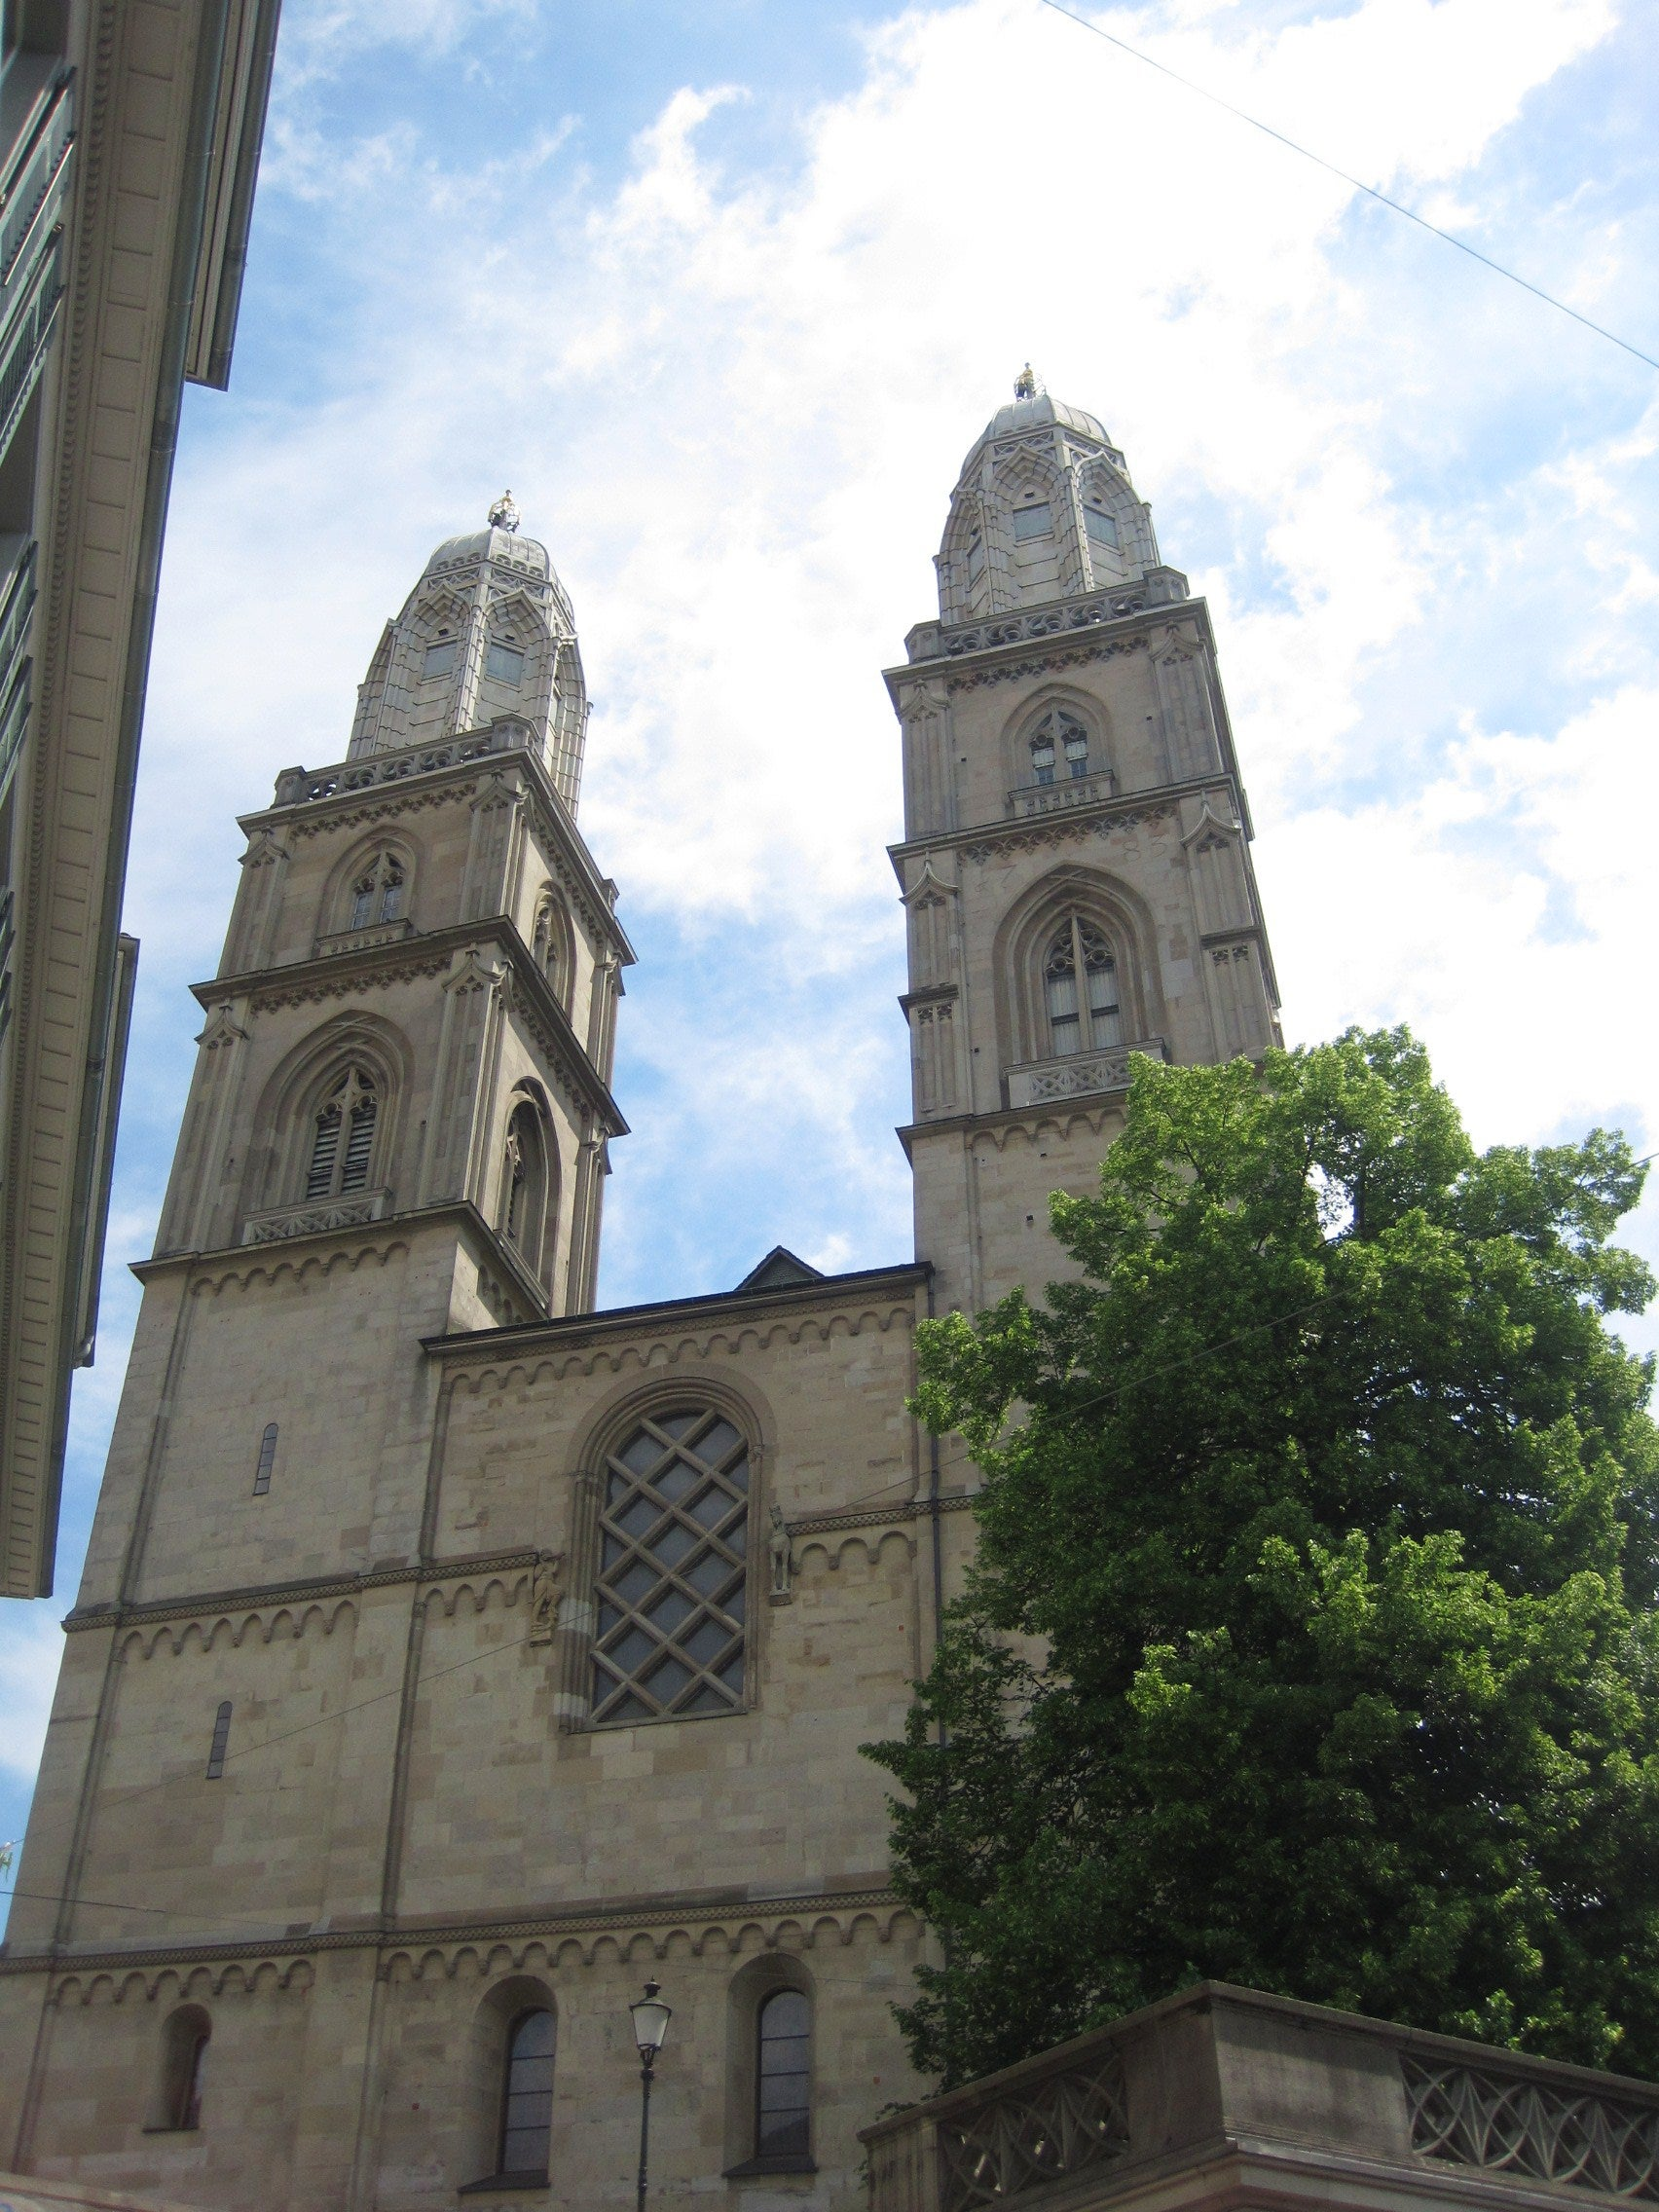 Edificio en Grossmünster